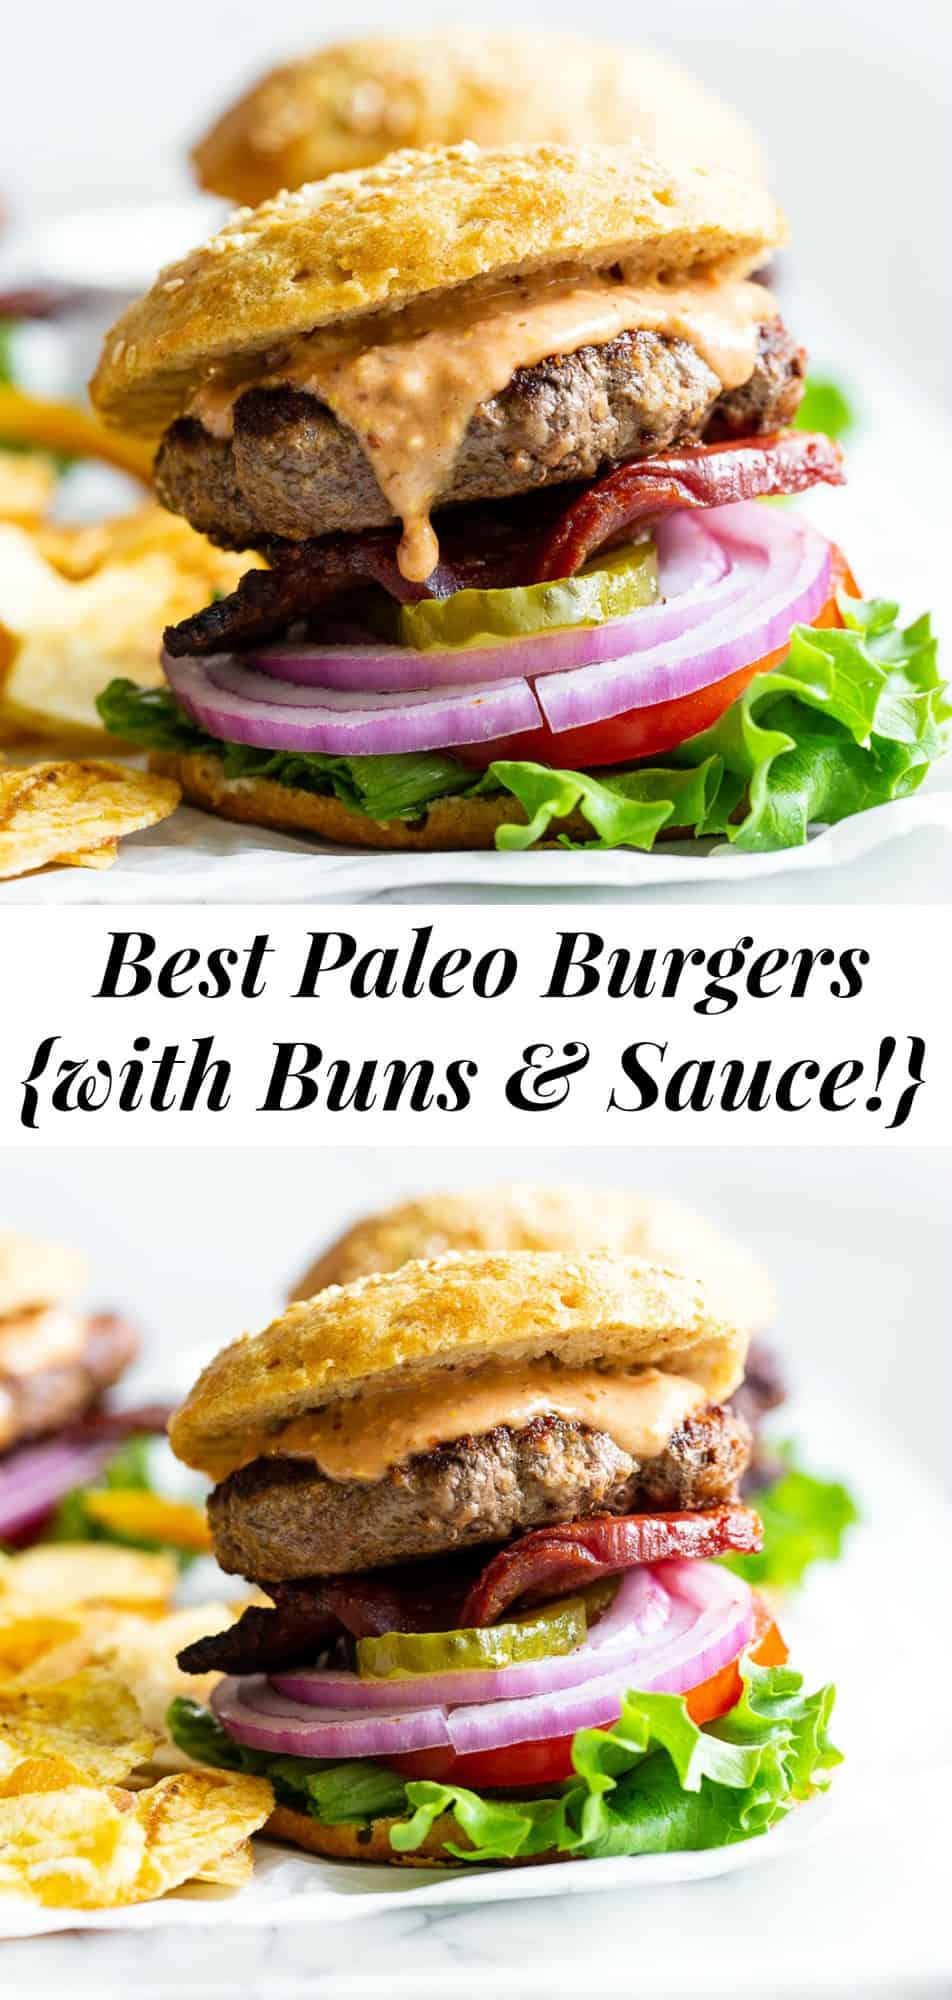 These classic paleo burgers taste just like the real deal but are made with better-for-you ingredients! Juicy grass-fed beef patties, grain free buns, a dairy-free, refined sugar free and soy free burger sauce and thick cut bacon make these the best loaded paleo burgers you'll try. #paleo #cleaneating #hamburgers #burgers #grainfree